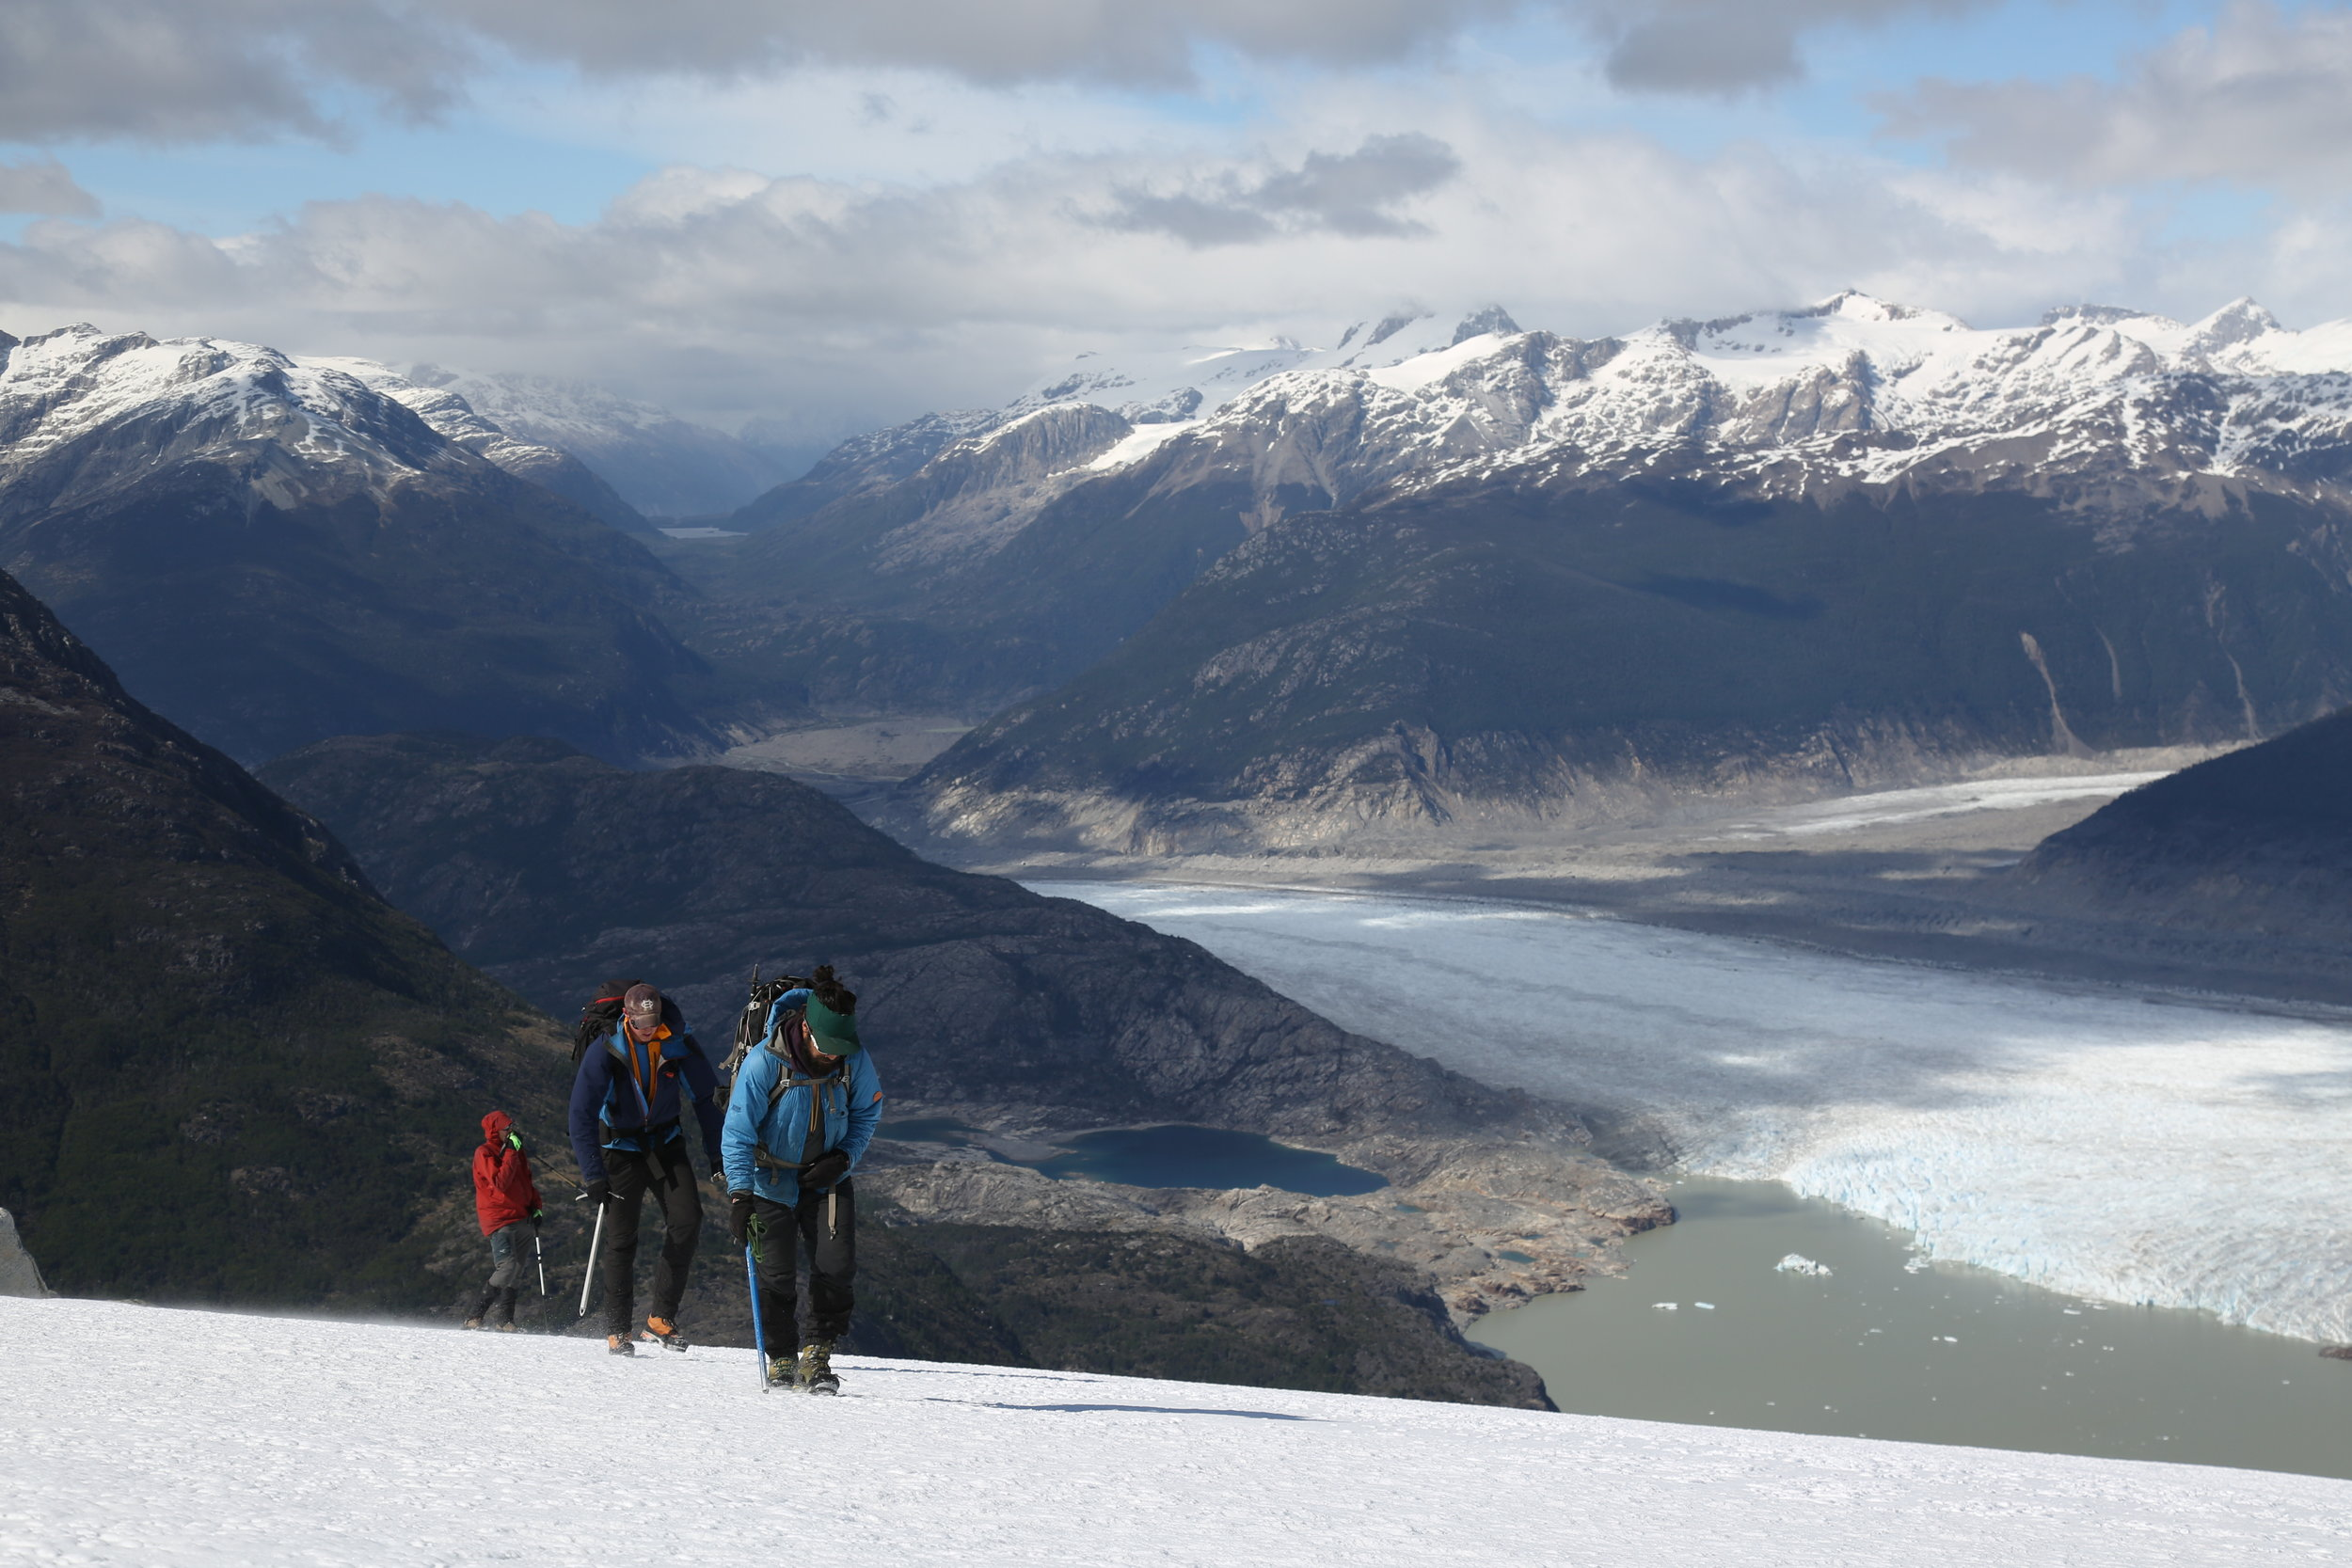 Headed up the South Slope, with a view of the Lago CaChet 2, the Colonia Glacier, and Lugana Corazón Incognito behind us.